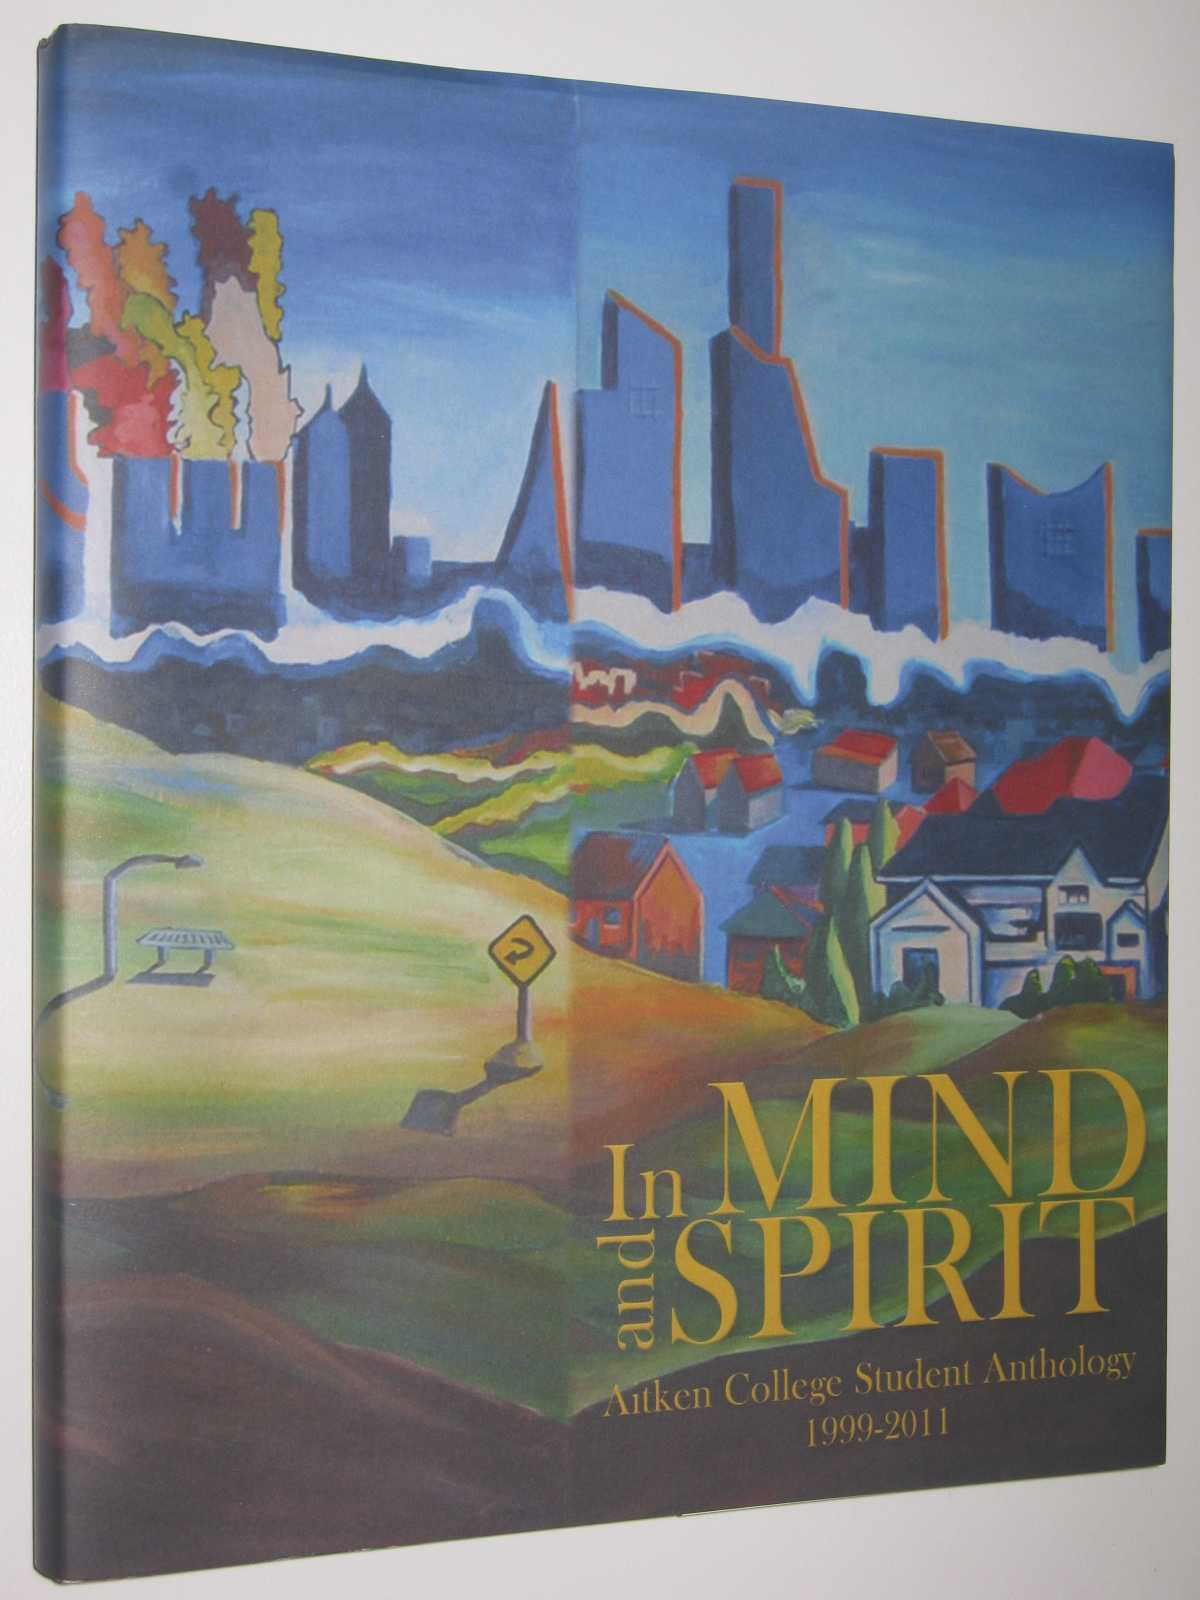 Image for In Mind and Spirit : Aitken College Student Anthology, 1999-2011